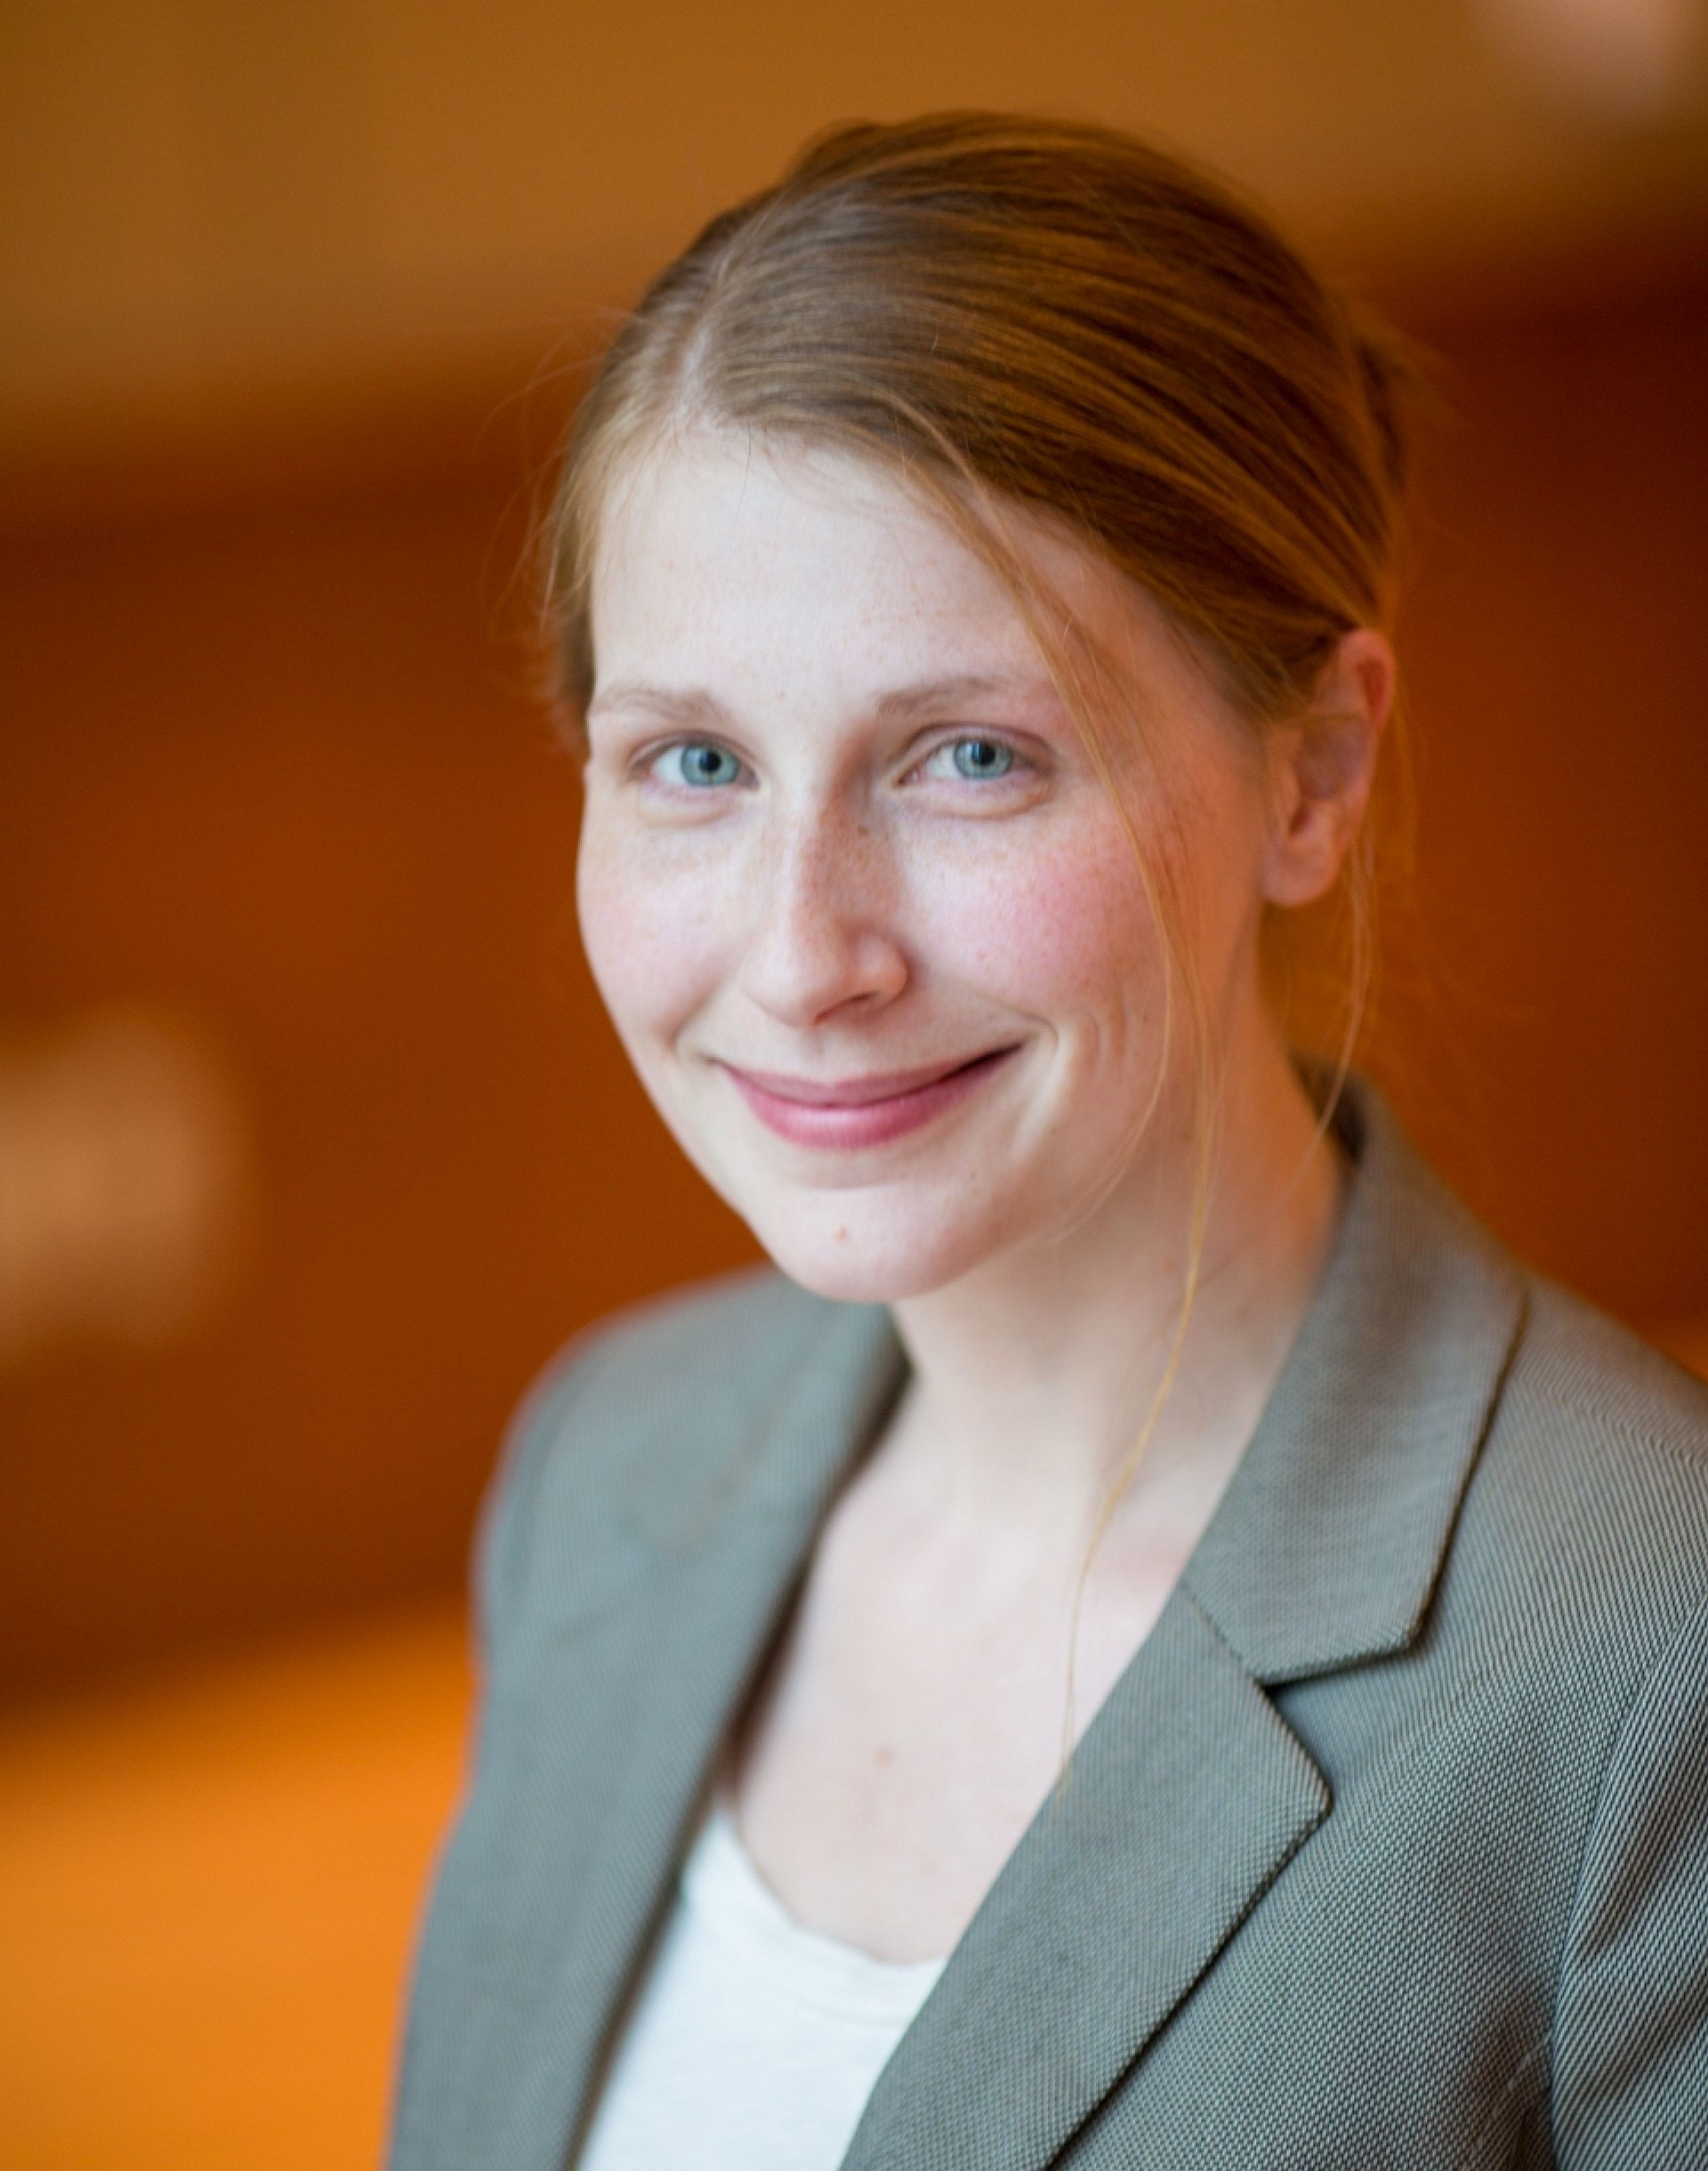 Staff Photo of Anna Seidel-Quast